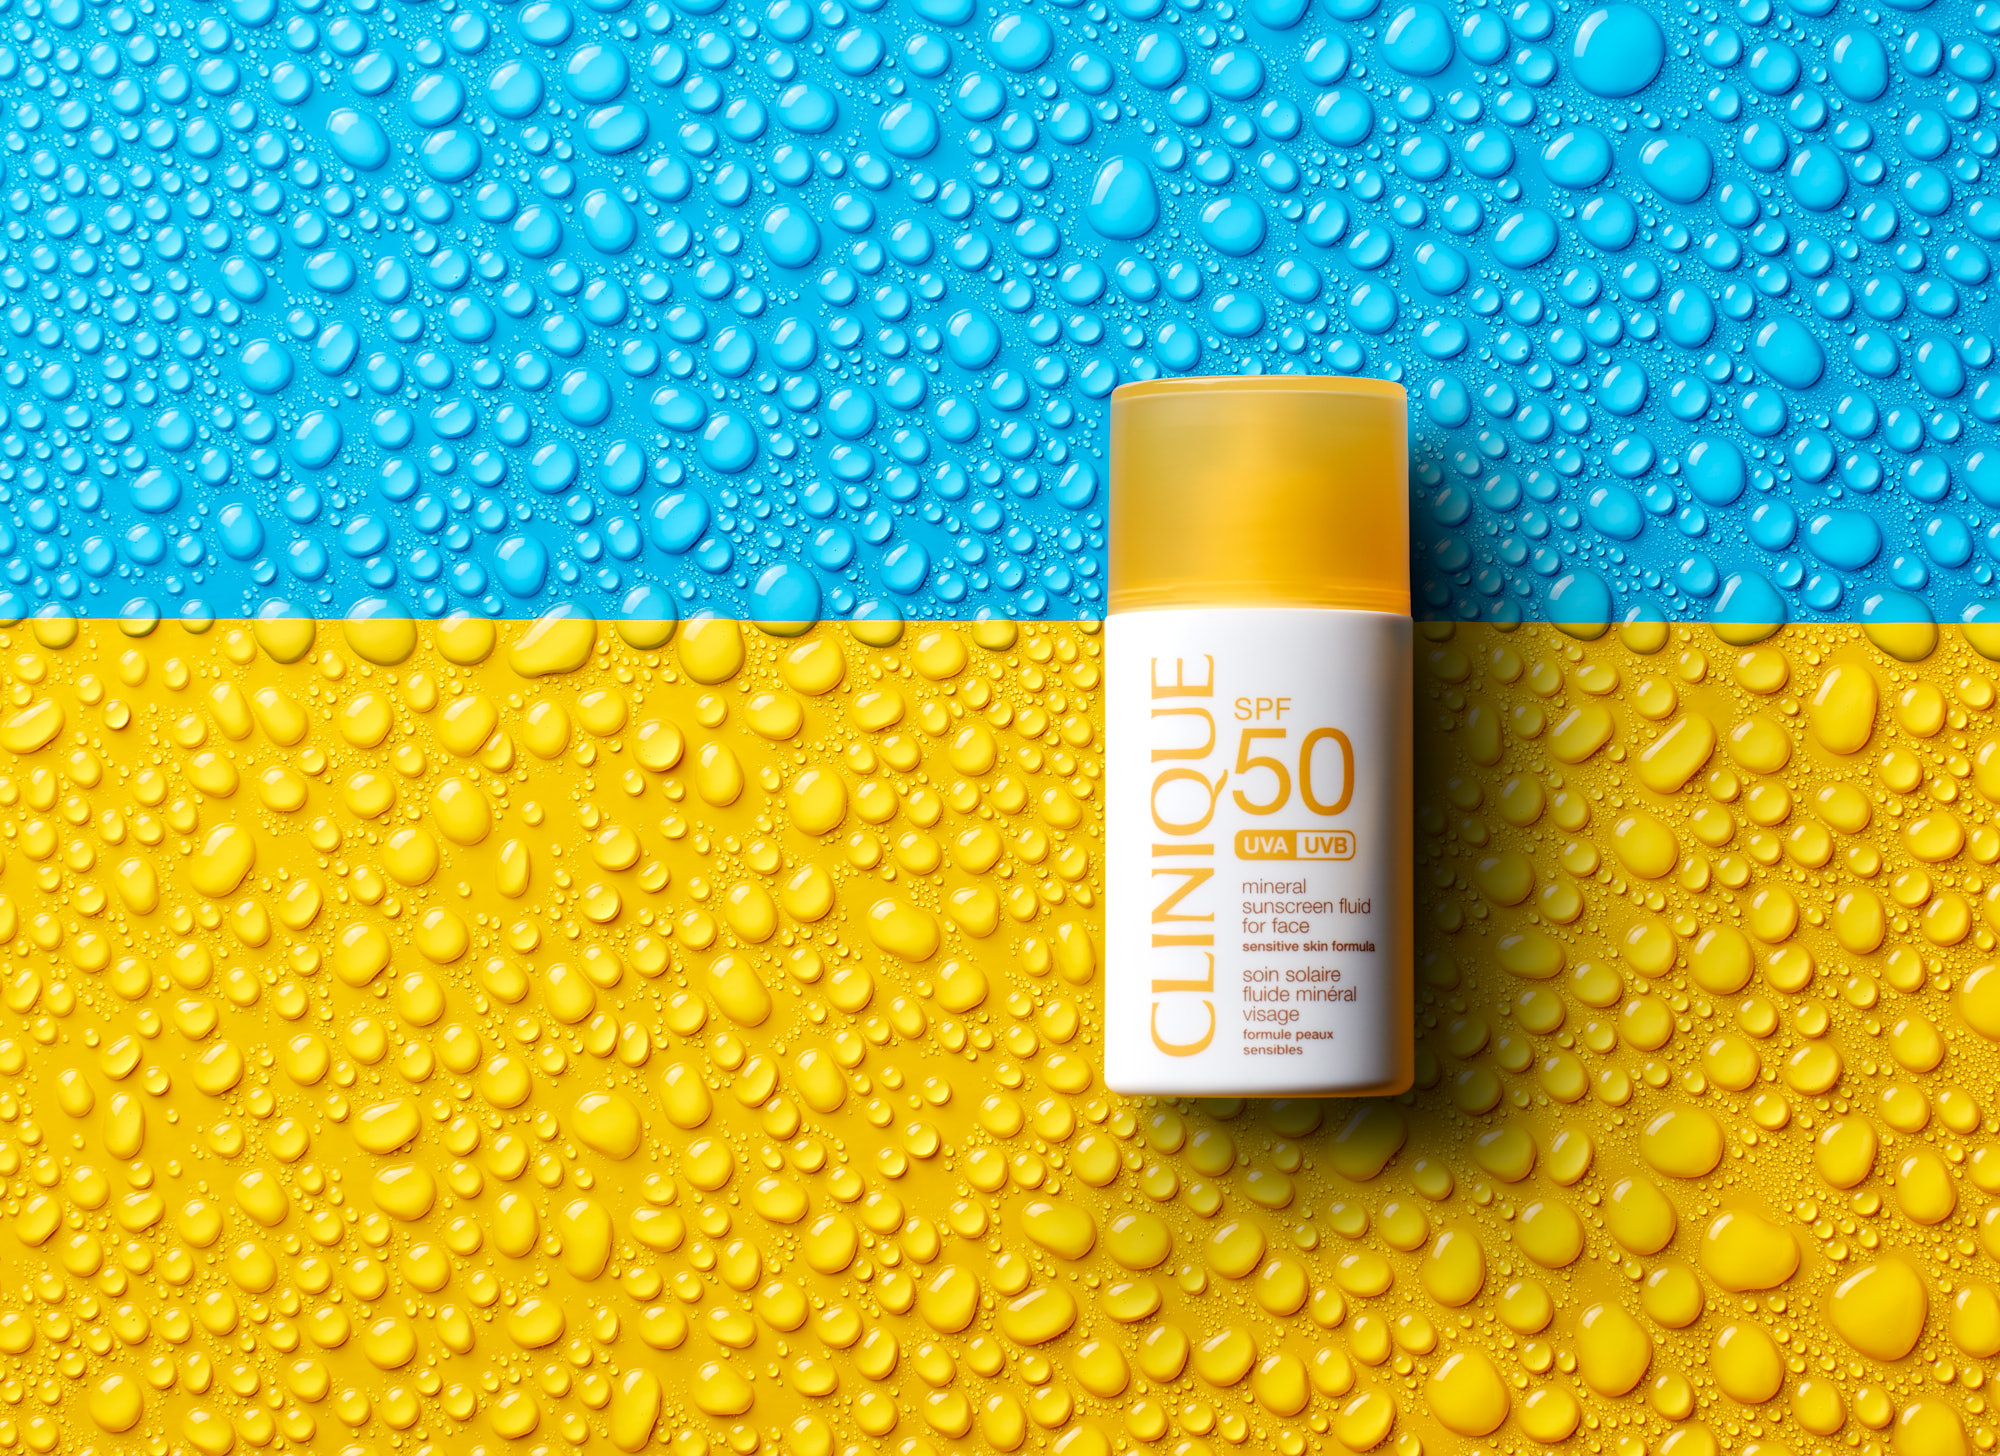 Clinique waterproof sunscreen on color blocked background with water droplets.